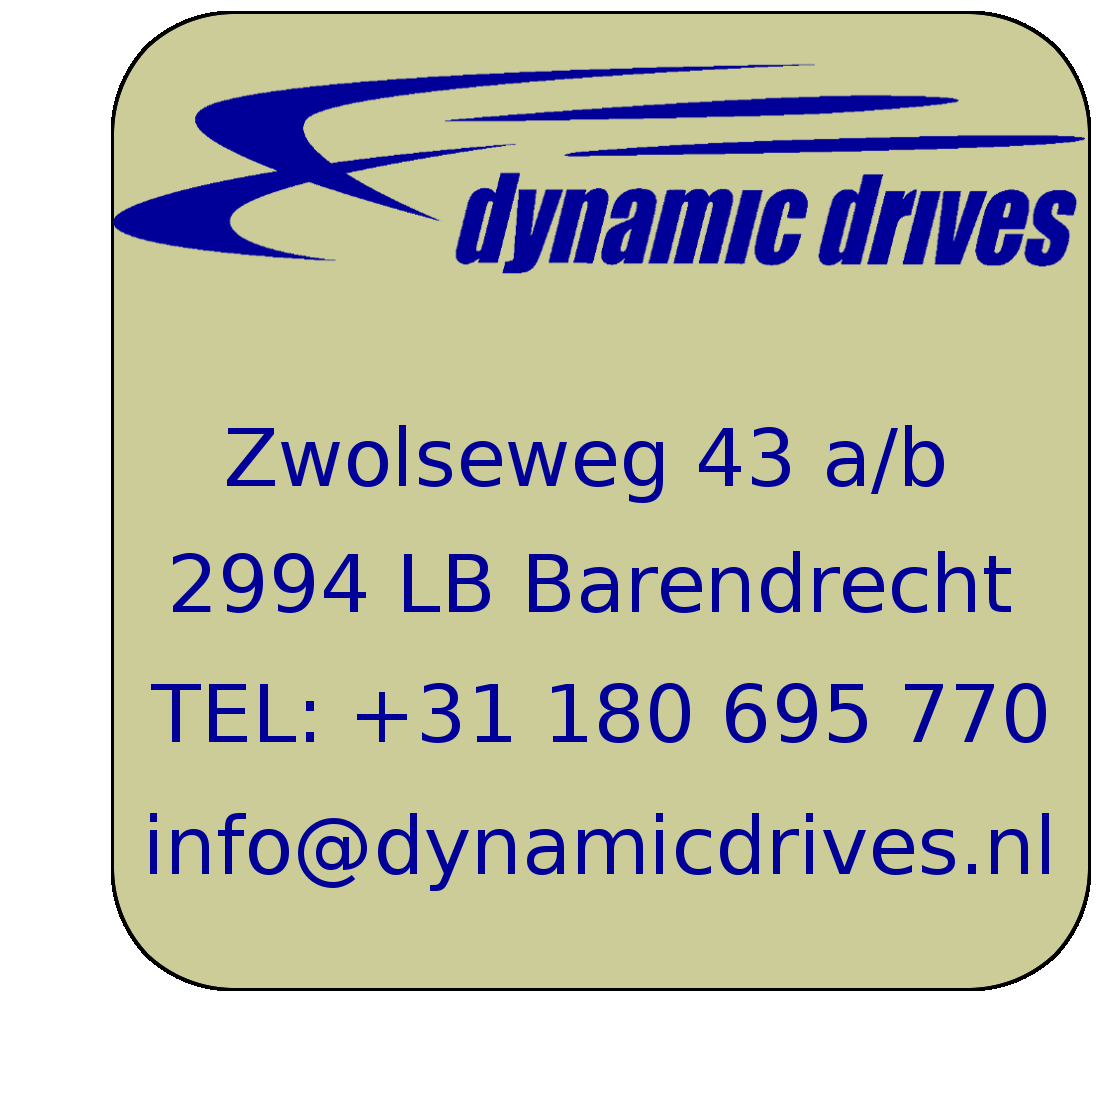 dynamicdrives